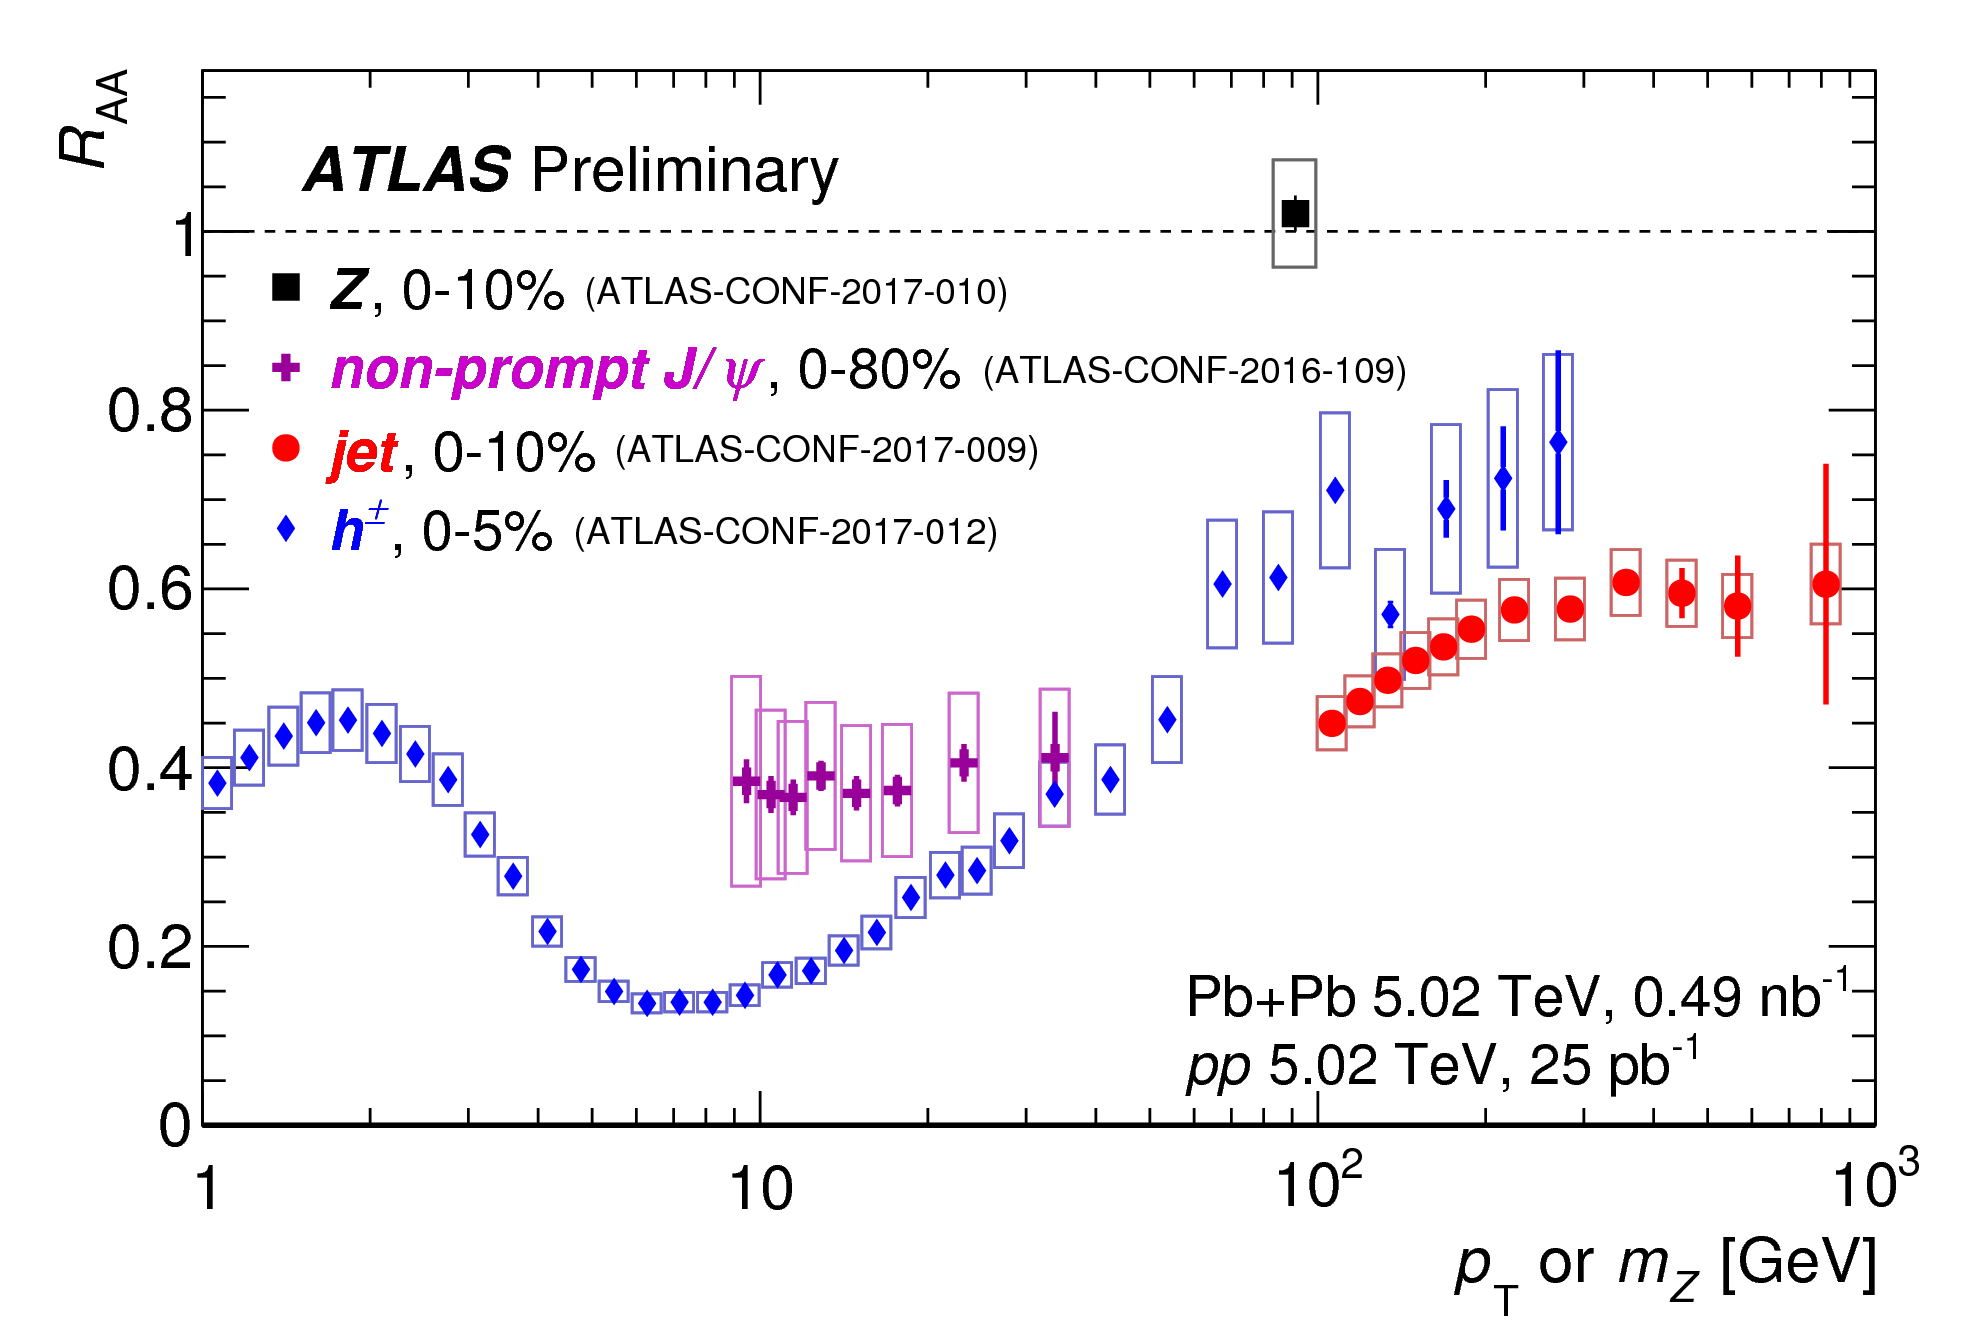 https://atlas.web.cern.ch/Atlas/GROUPS/PHYSICS/CombinedSummaryPlots/HION/ATLAS_HION_Summary_Raa_05/ATLAS_HION_Summary_Raa_05.png